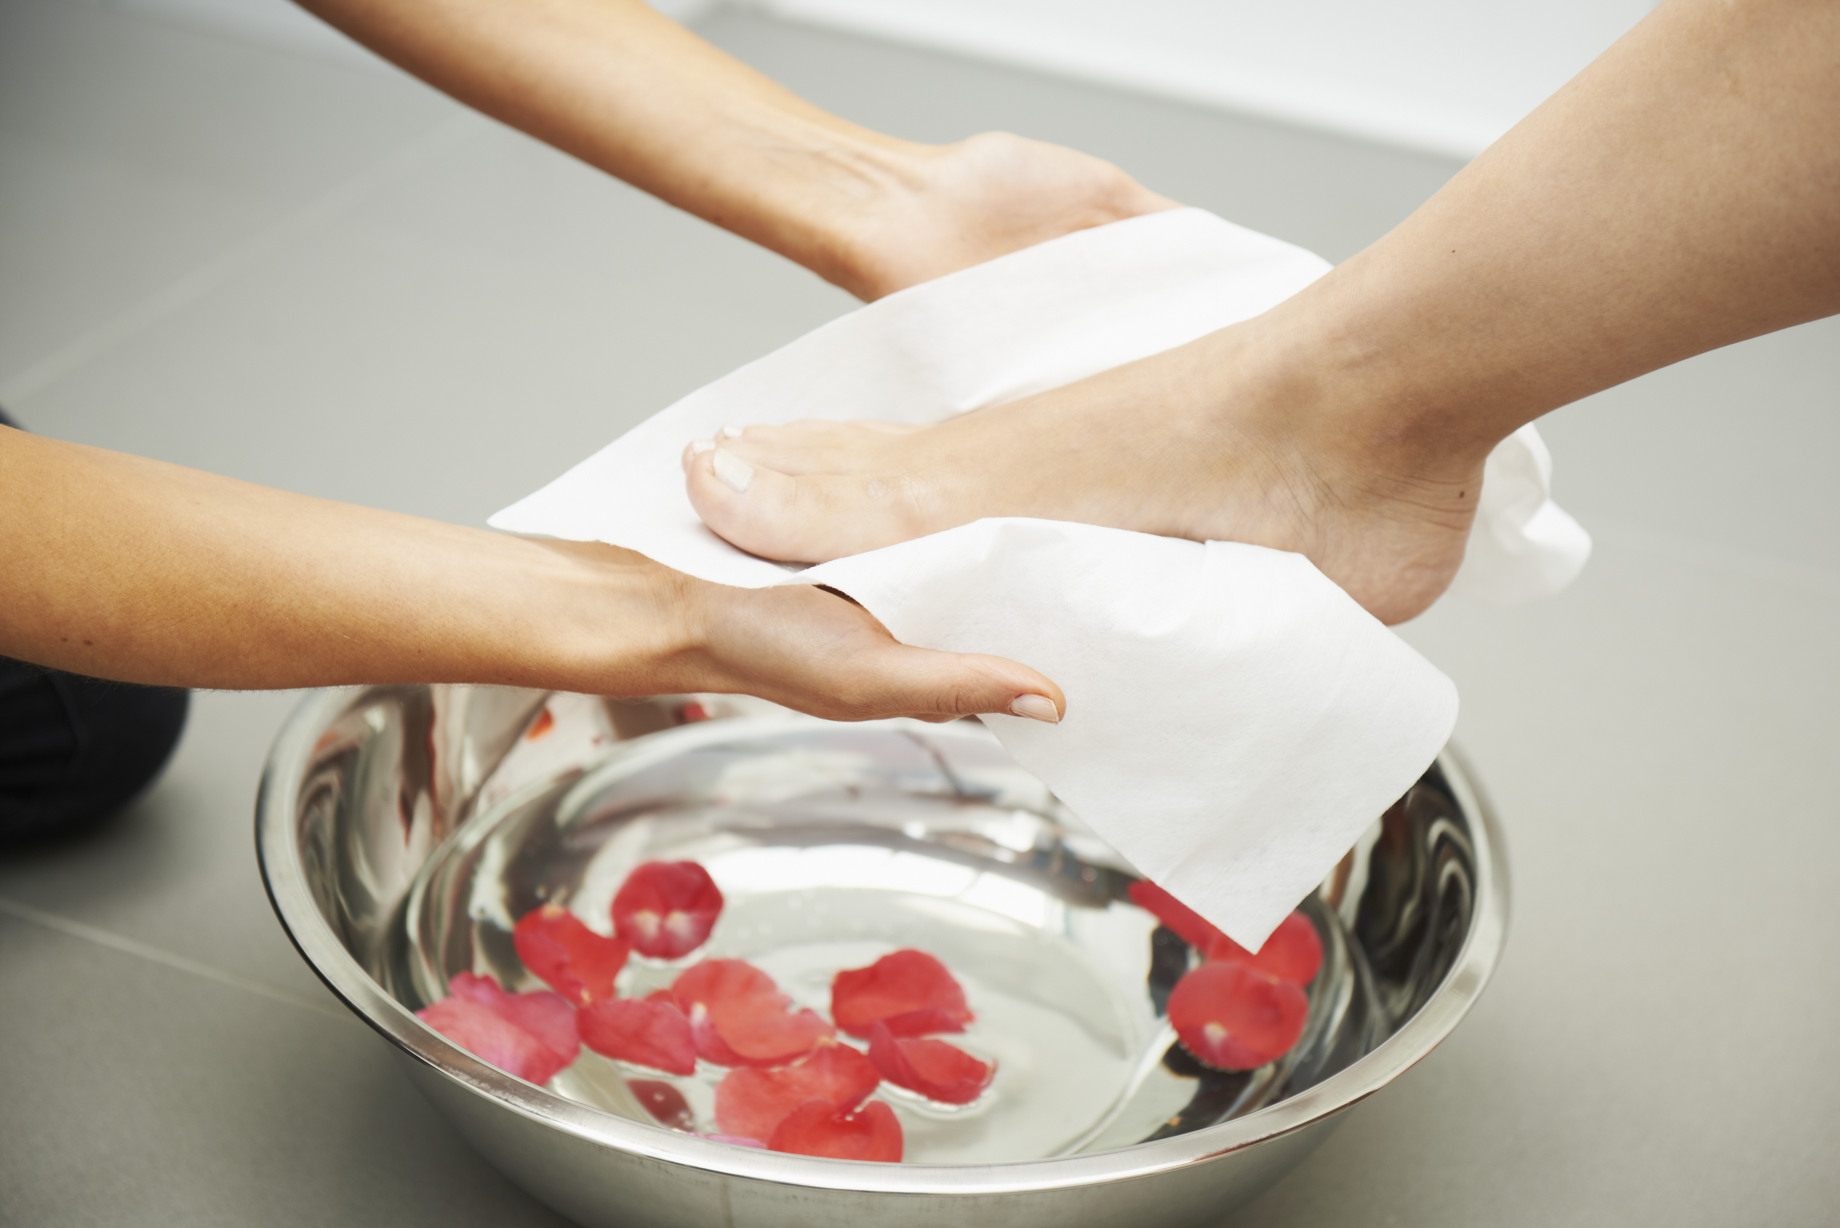 Easydry Disposable Small Towel being used for a manicure